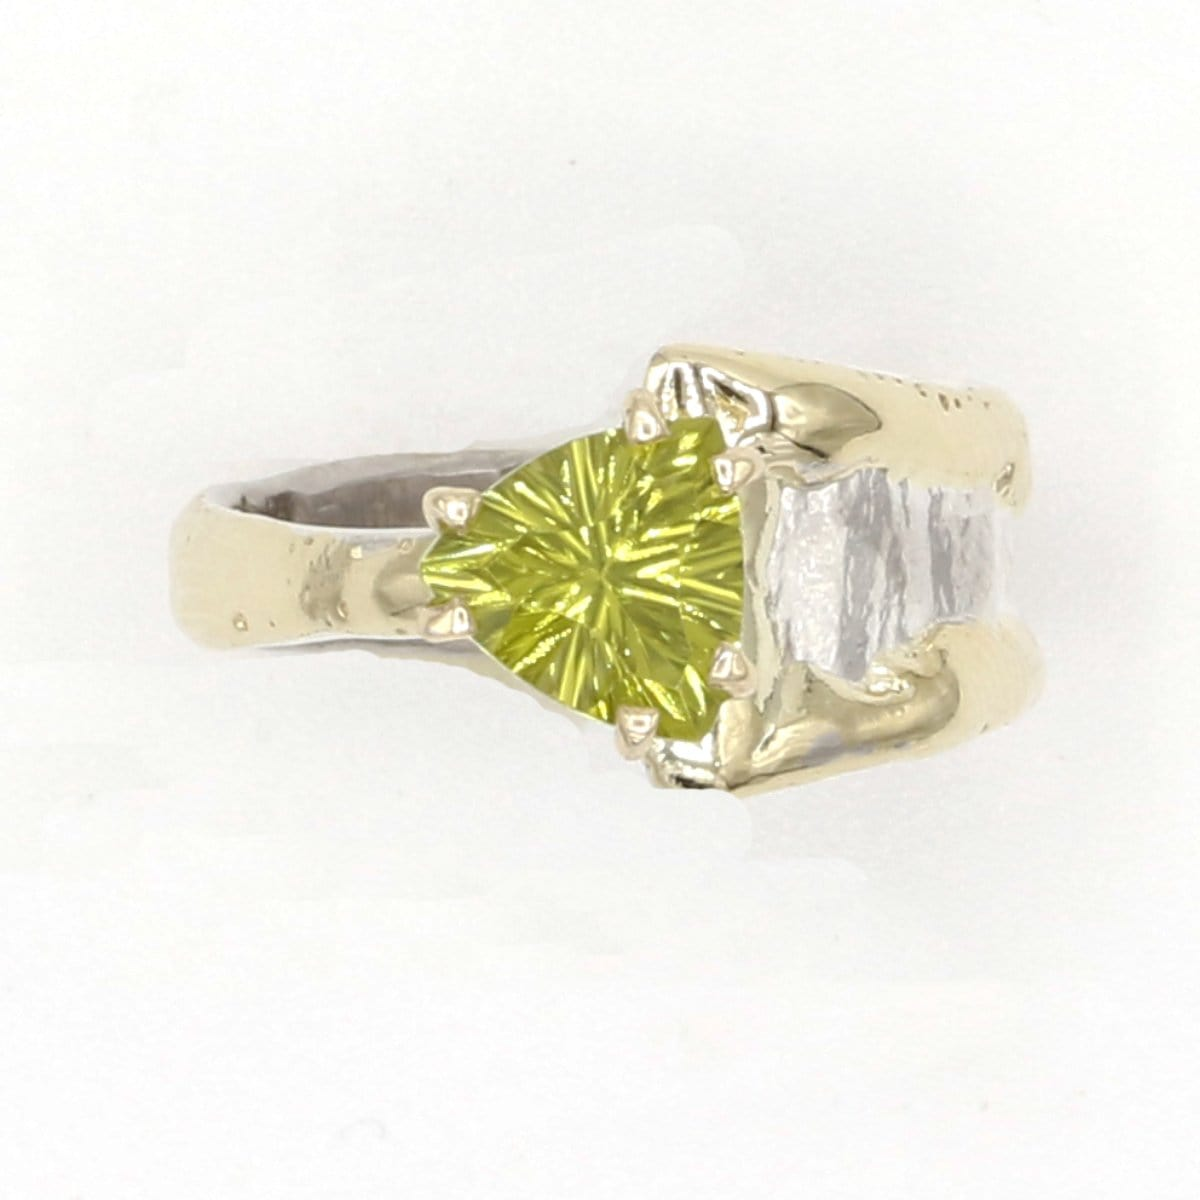 14K Gold & Crystalline Silver Peridot Ring - 37399-Fusion Designs-Renee Taylor Gallery